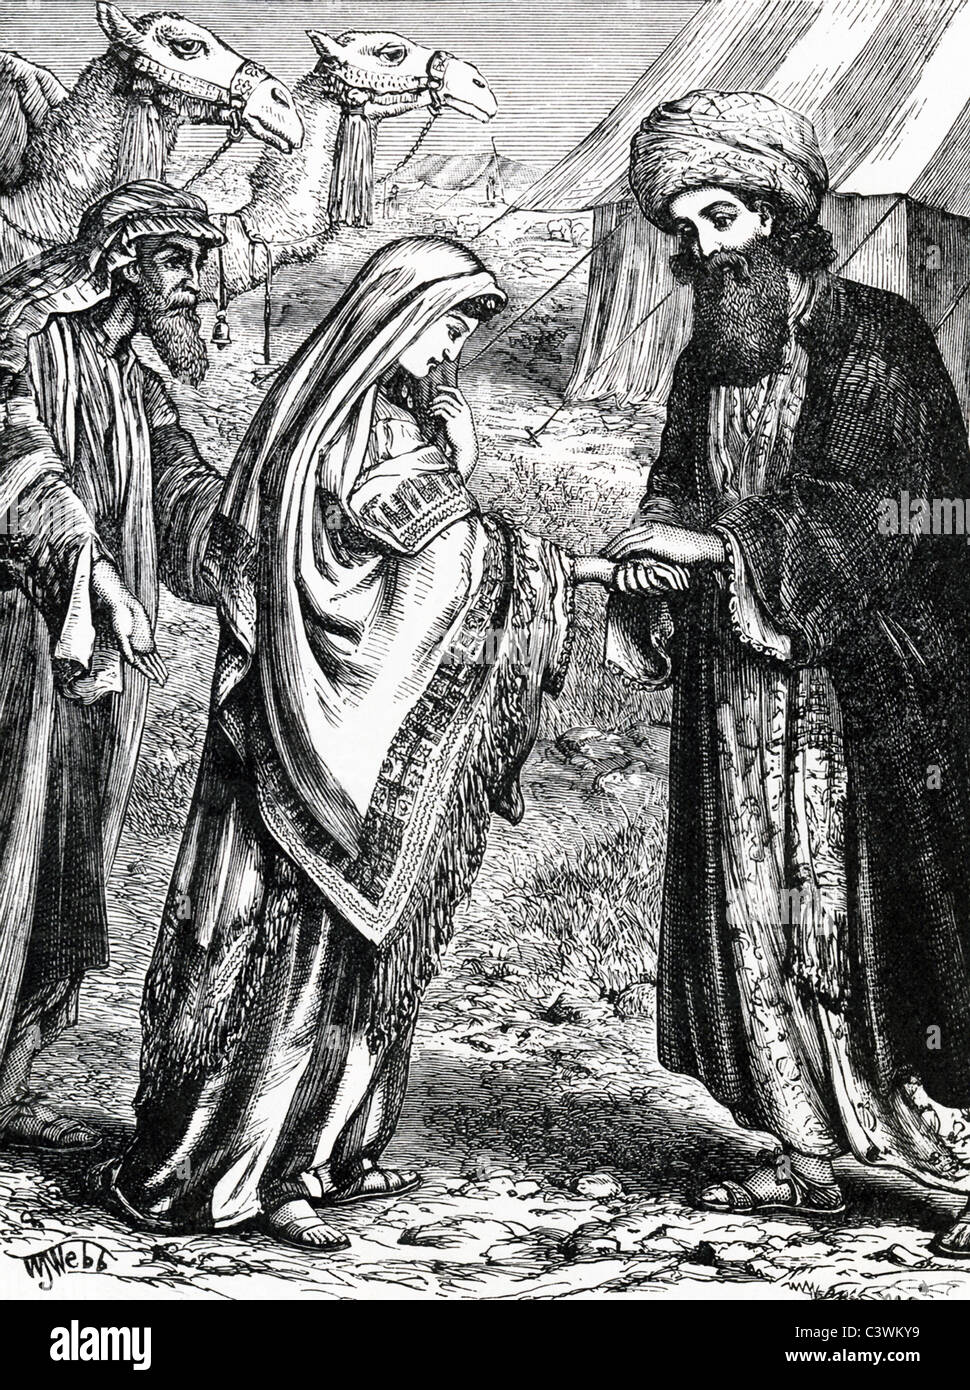 according to the bible rebecca middle was the wife of isaac